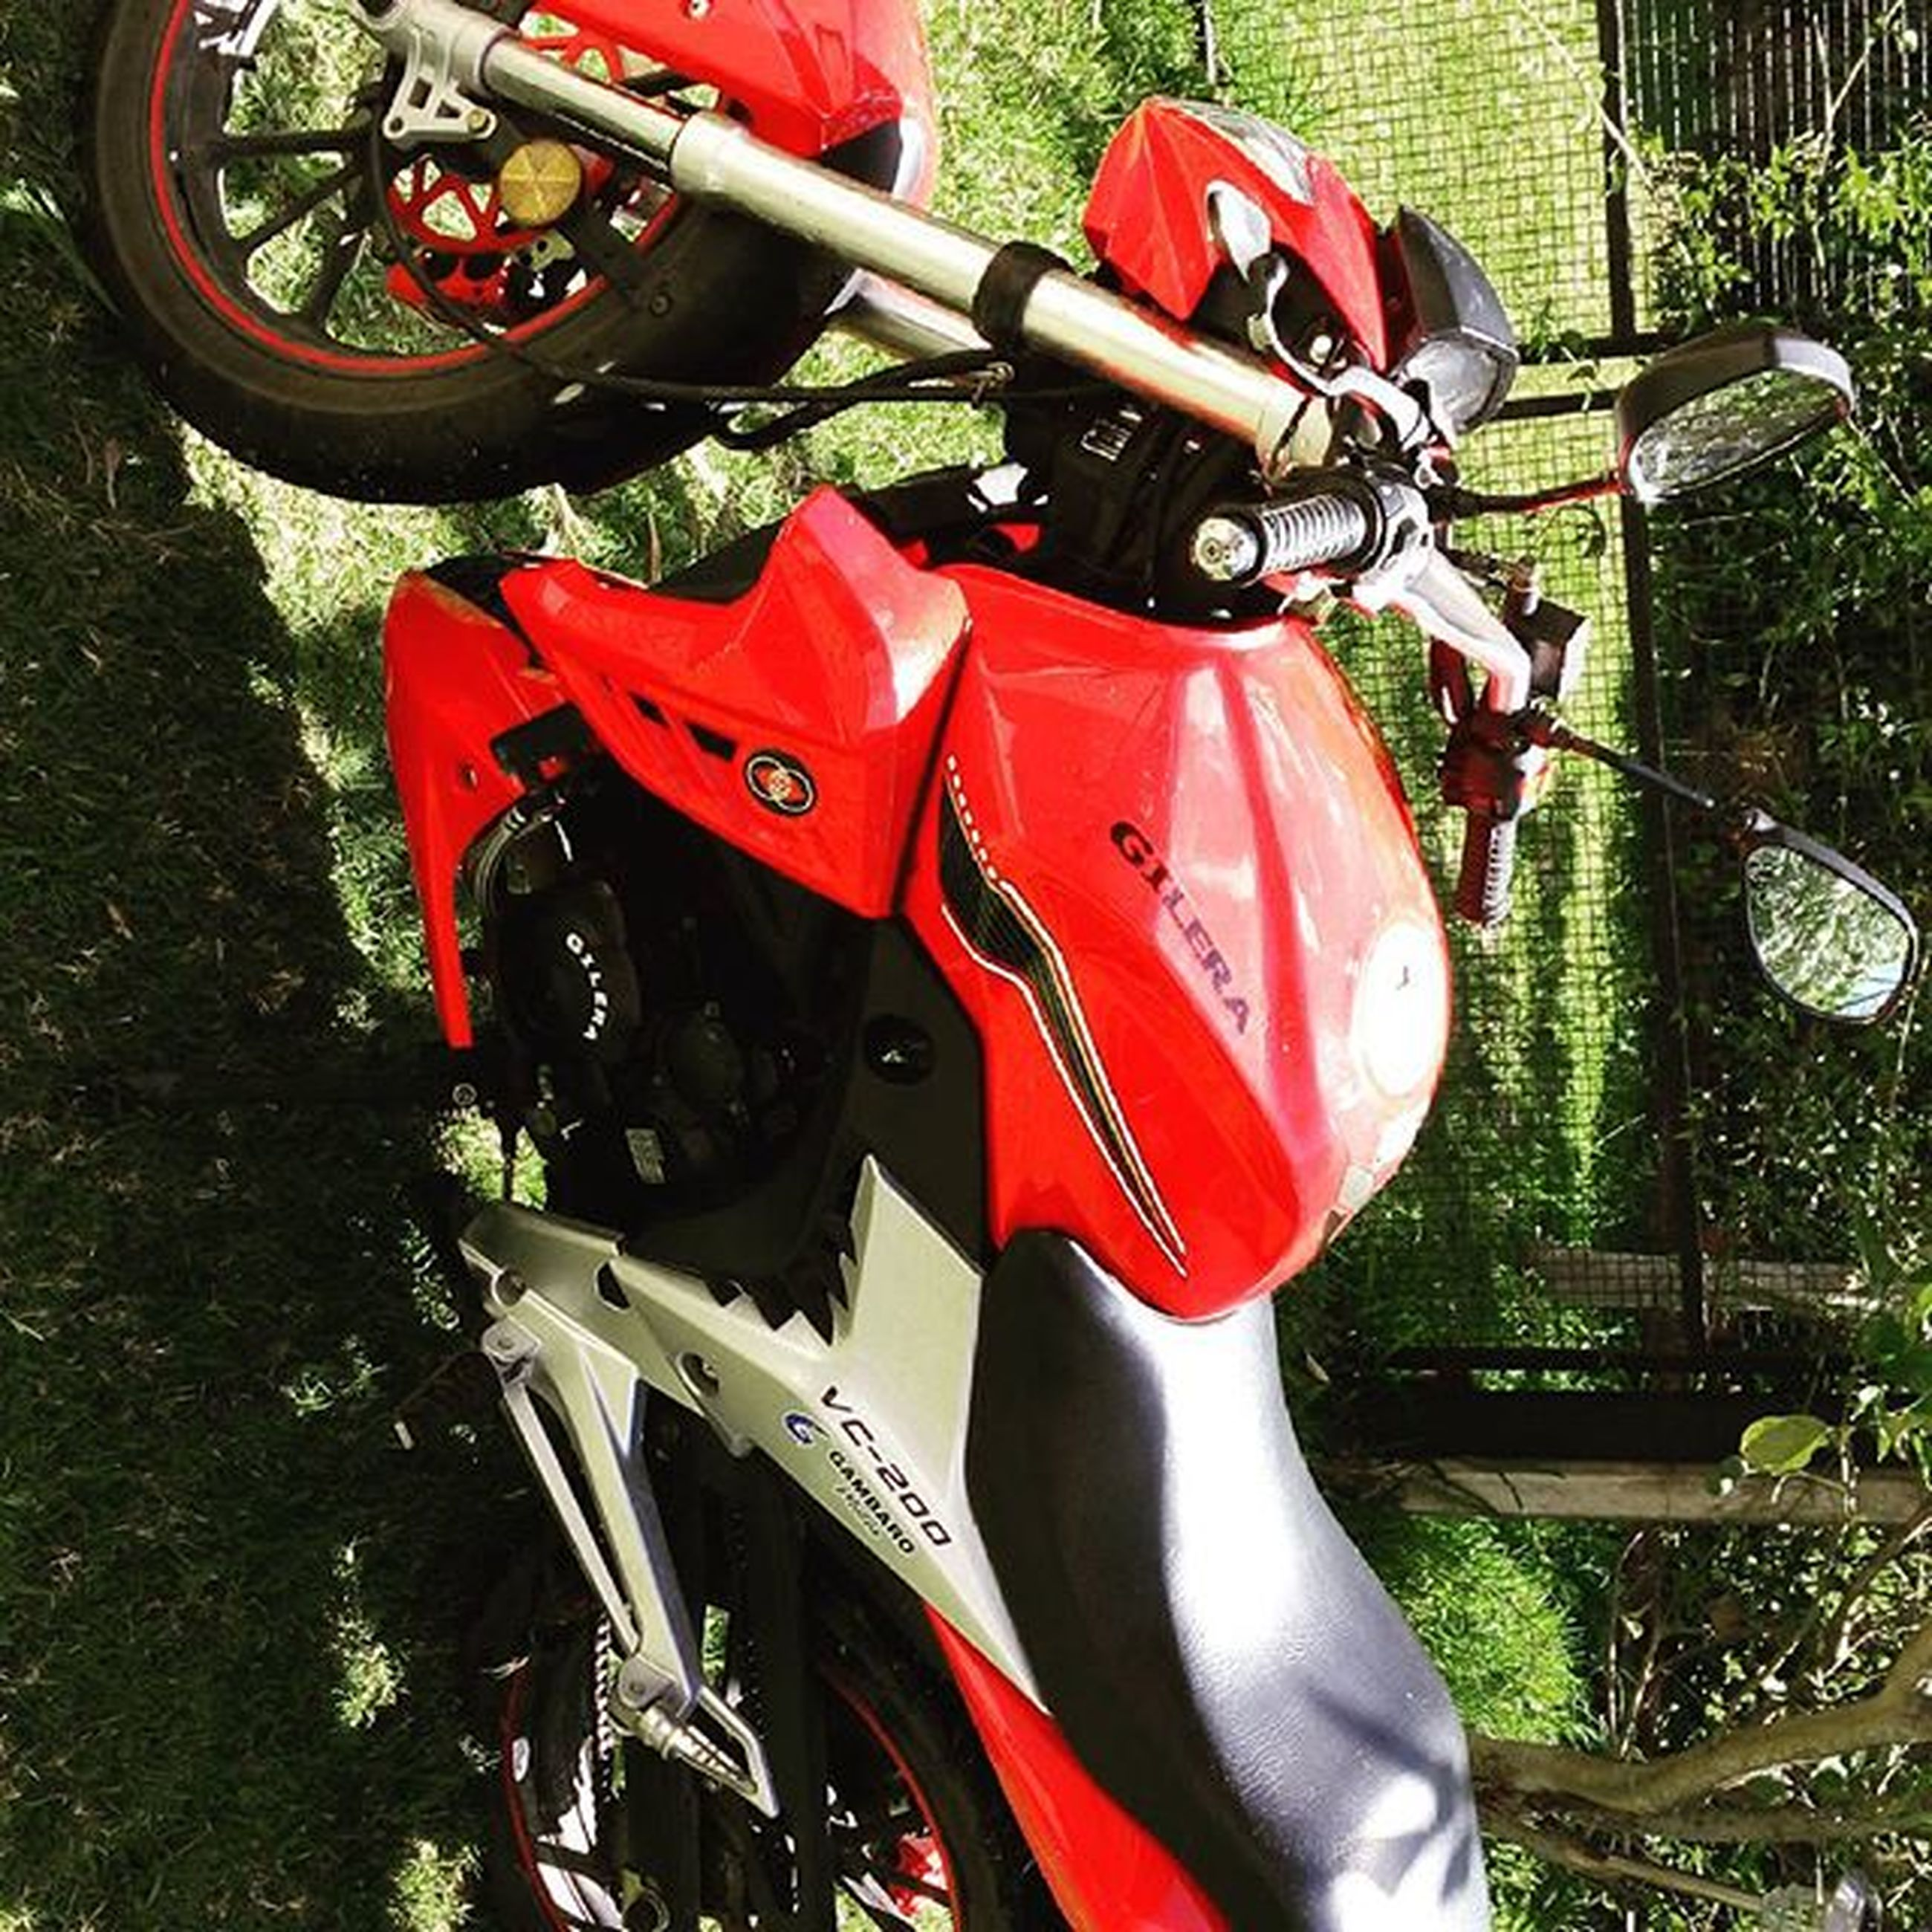 land vehicle, transportation, mode of transport, car, red, high angle view, outdoors, wheel, day, stationary, bicycle, sunlight, grass, close-up, no people, part of, motorcycle, travel, parking, low section